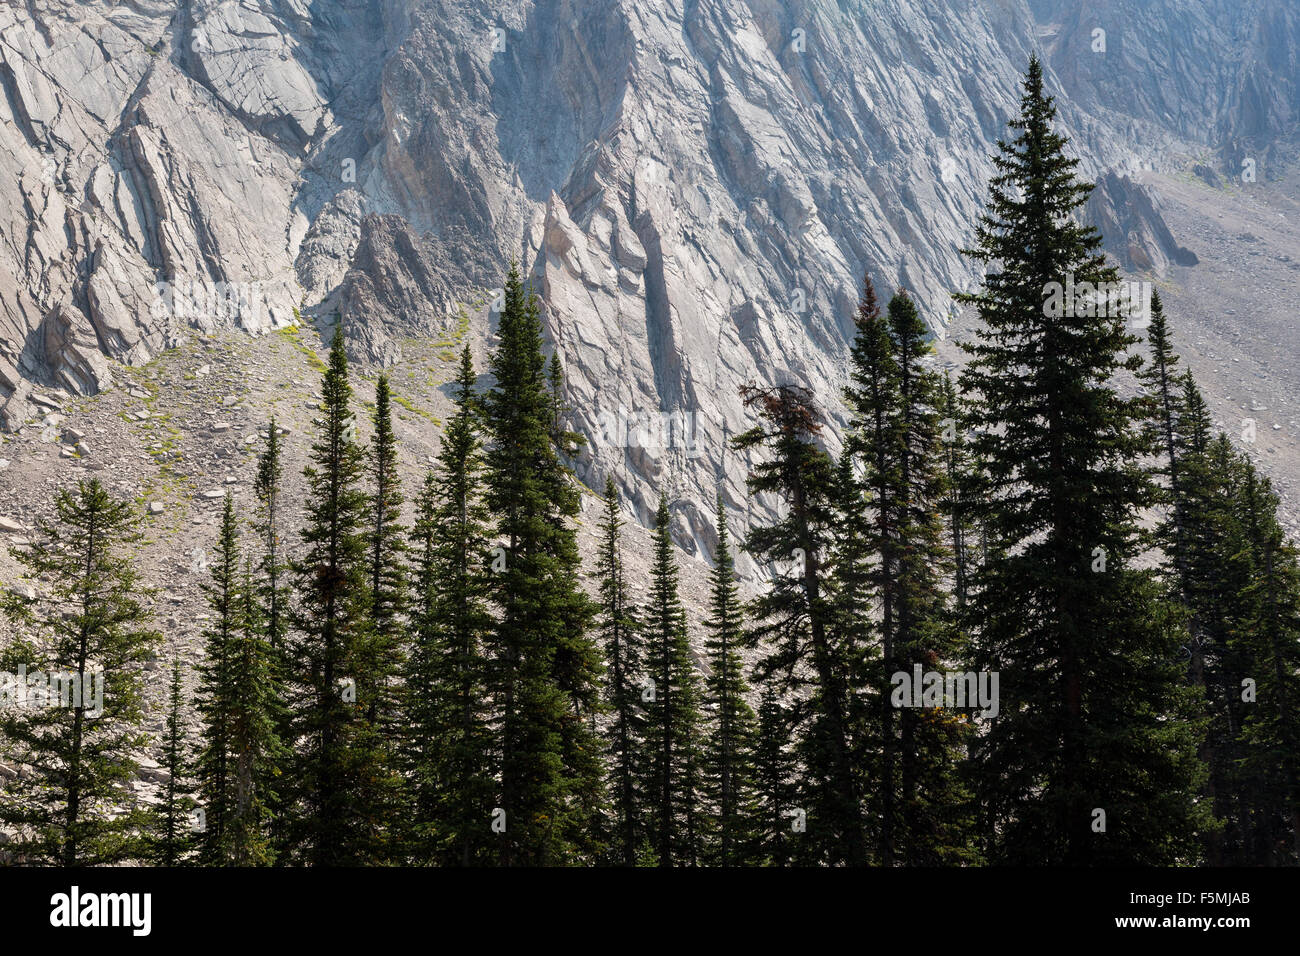 Evergreen trees standing in front of rocky cliffs in the Gros Ventre Mountains, Gros Ventre Wilderness, Wyoming - Stock Image